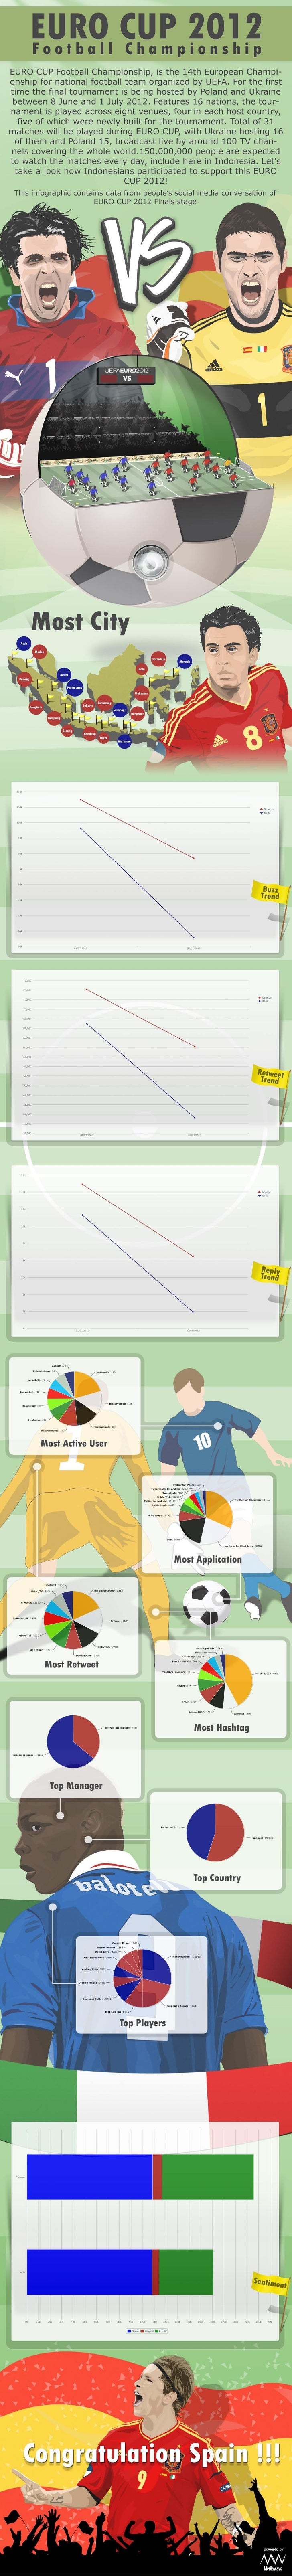 Euro Cup 2012 Infographic - Part IV